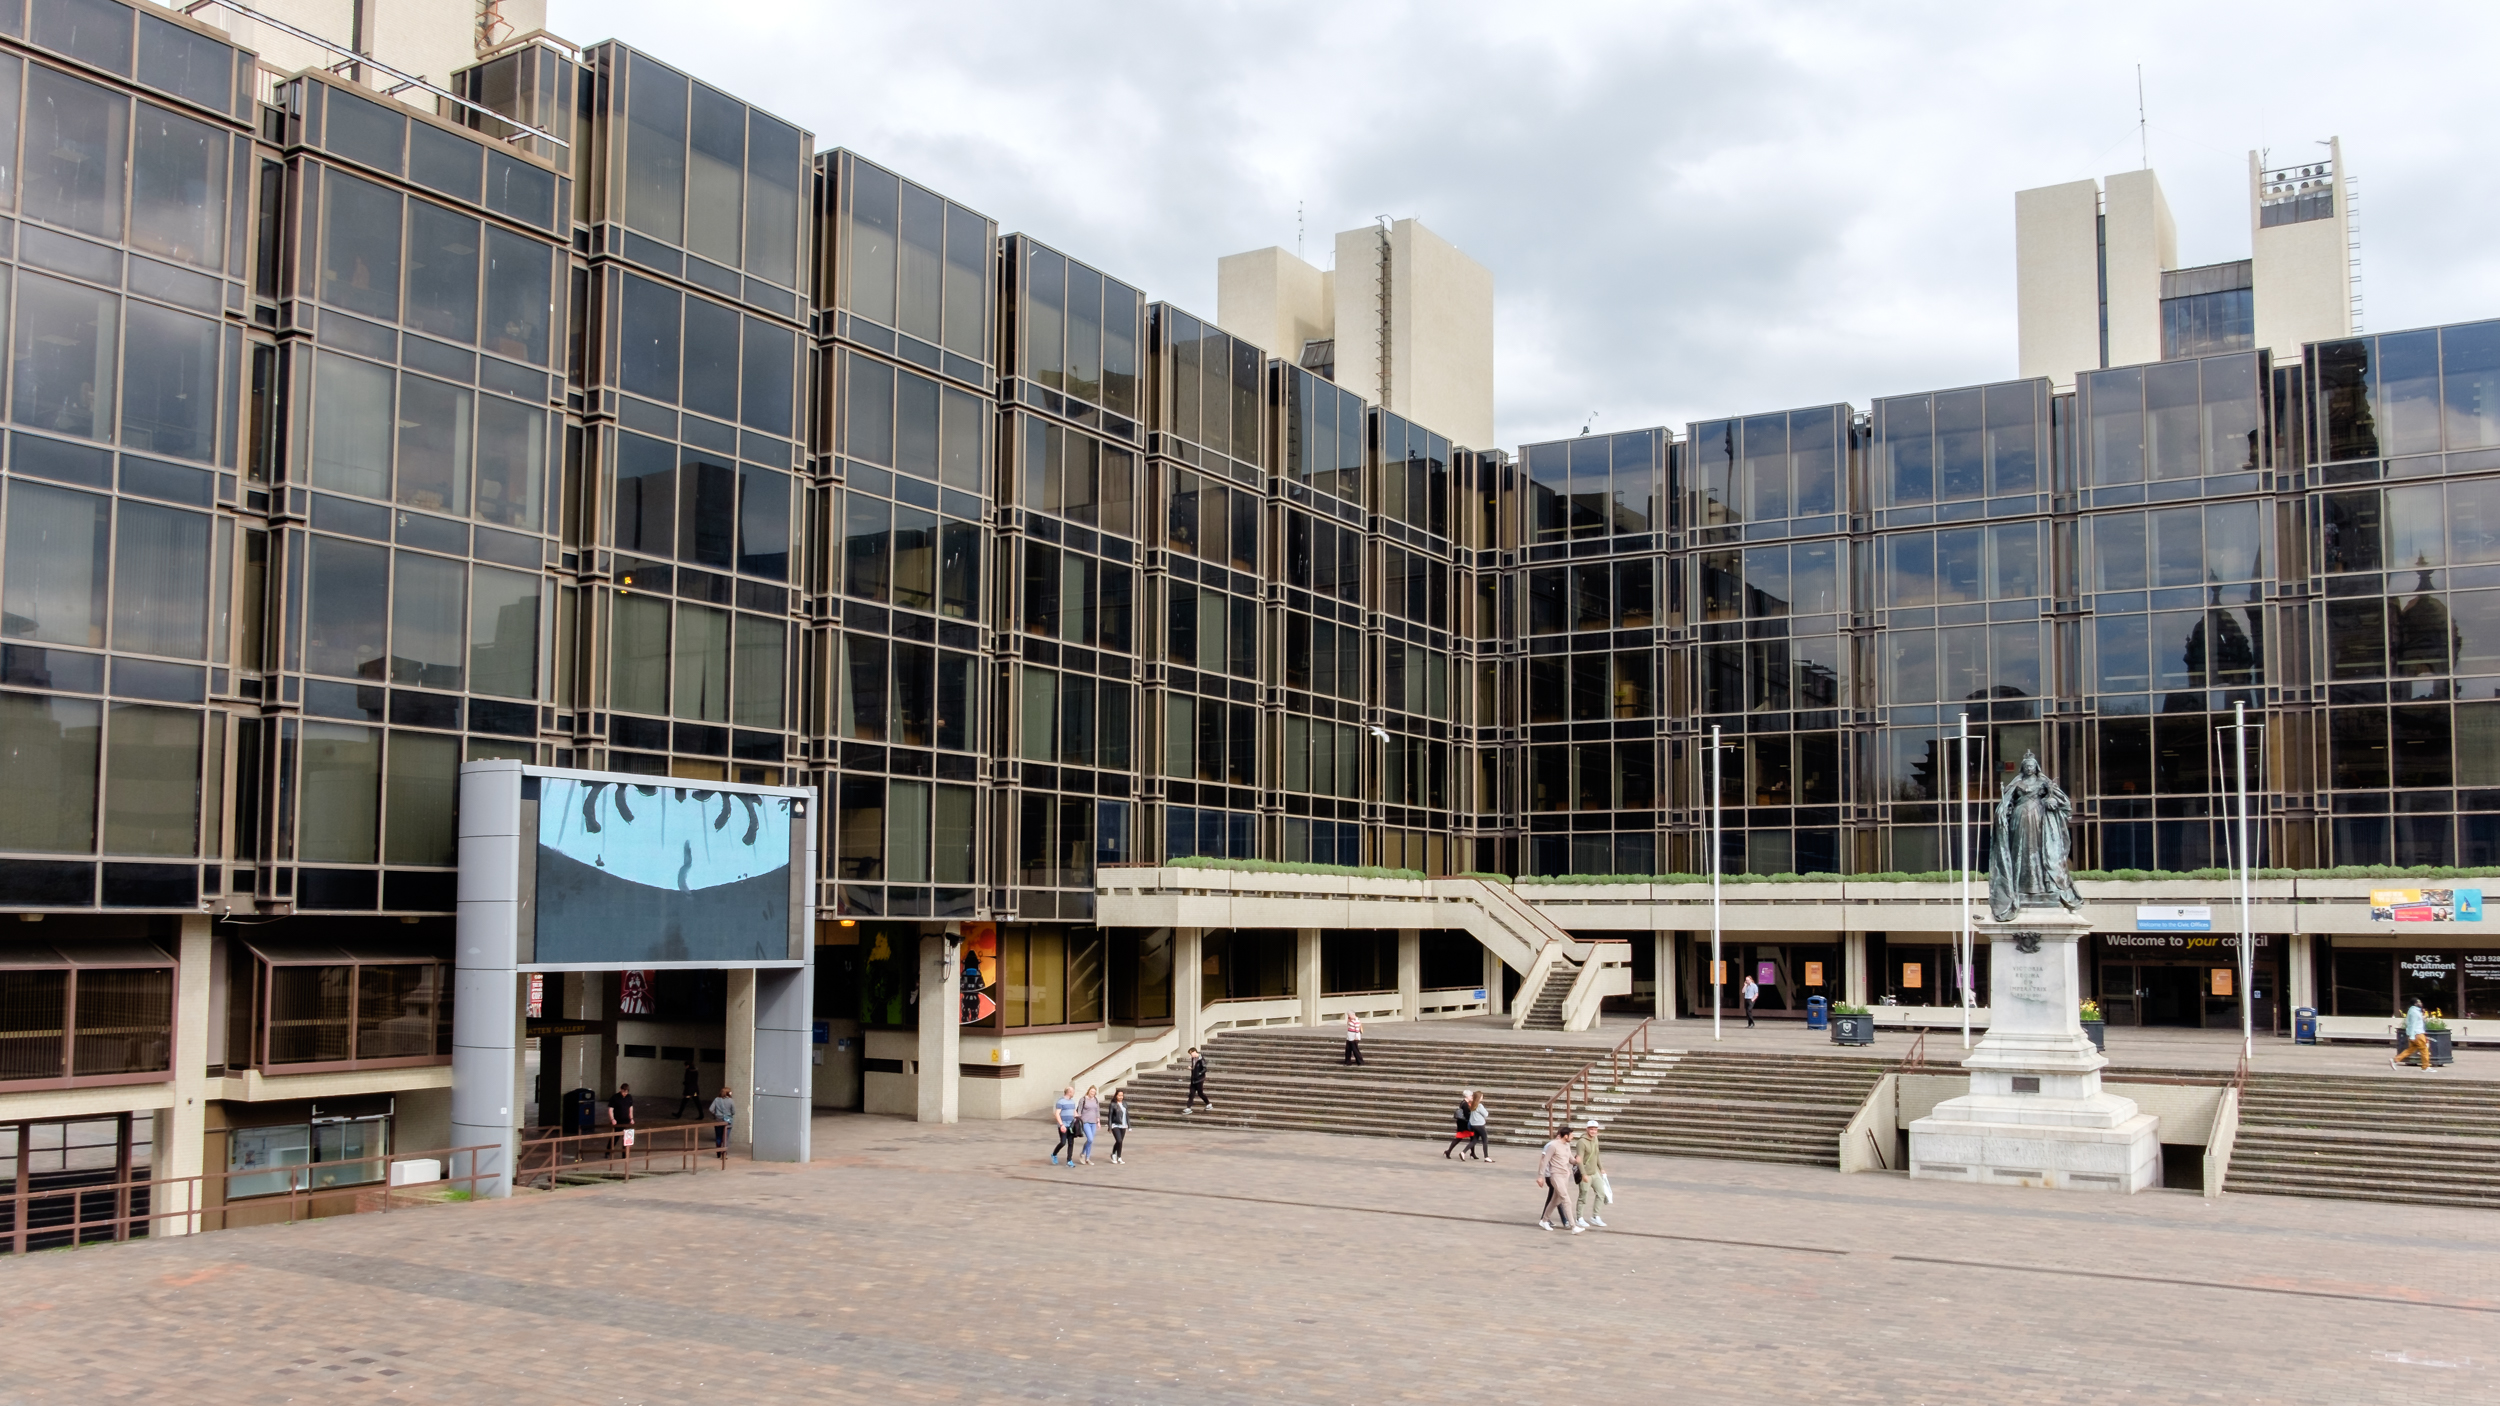 Photograph of Portsmouth Civic Offices, Portsmouth UK